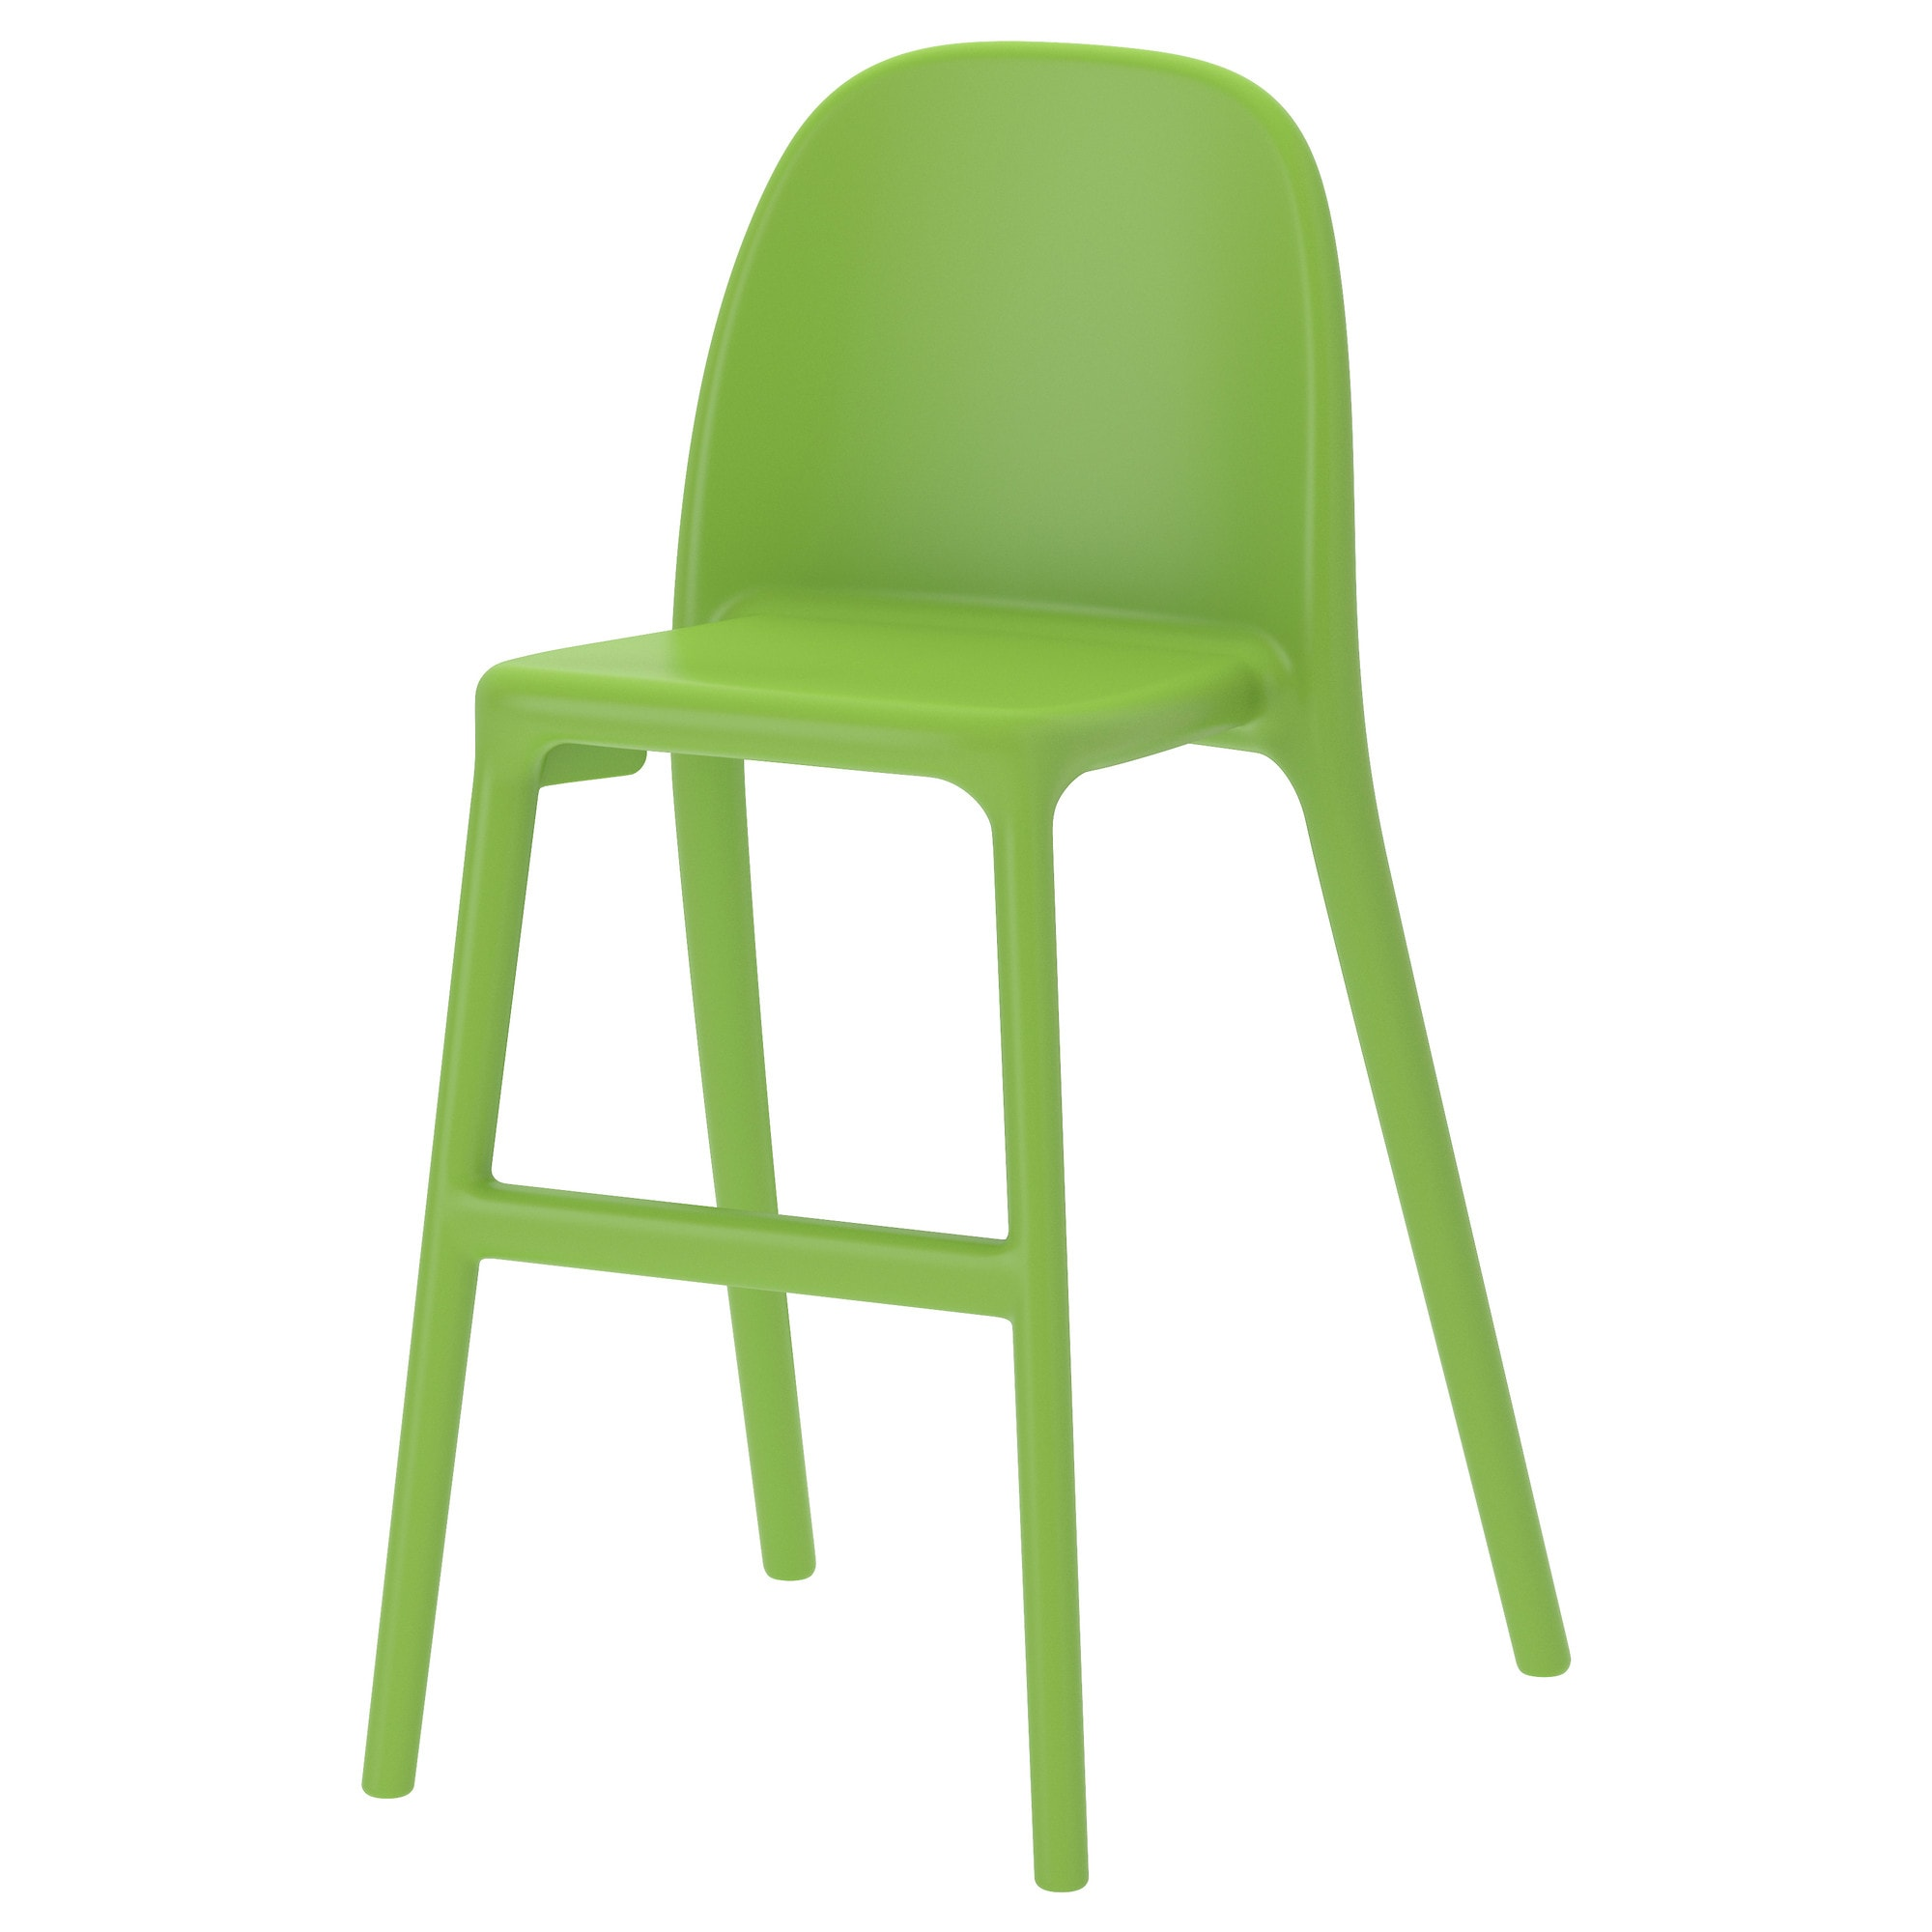 Alfa img Showing Toddler Chair IKEA